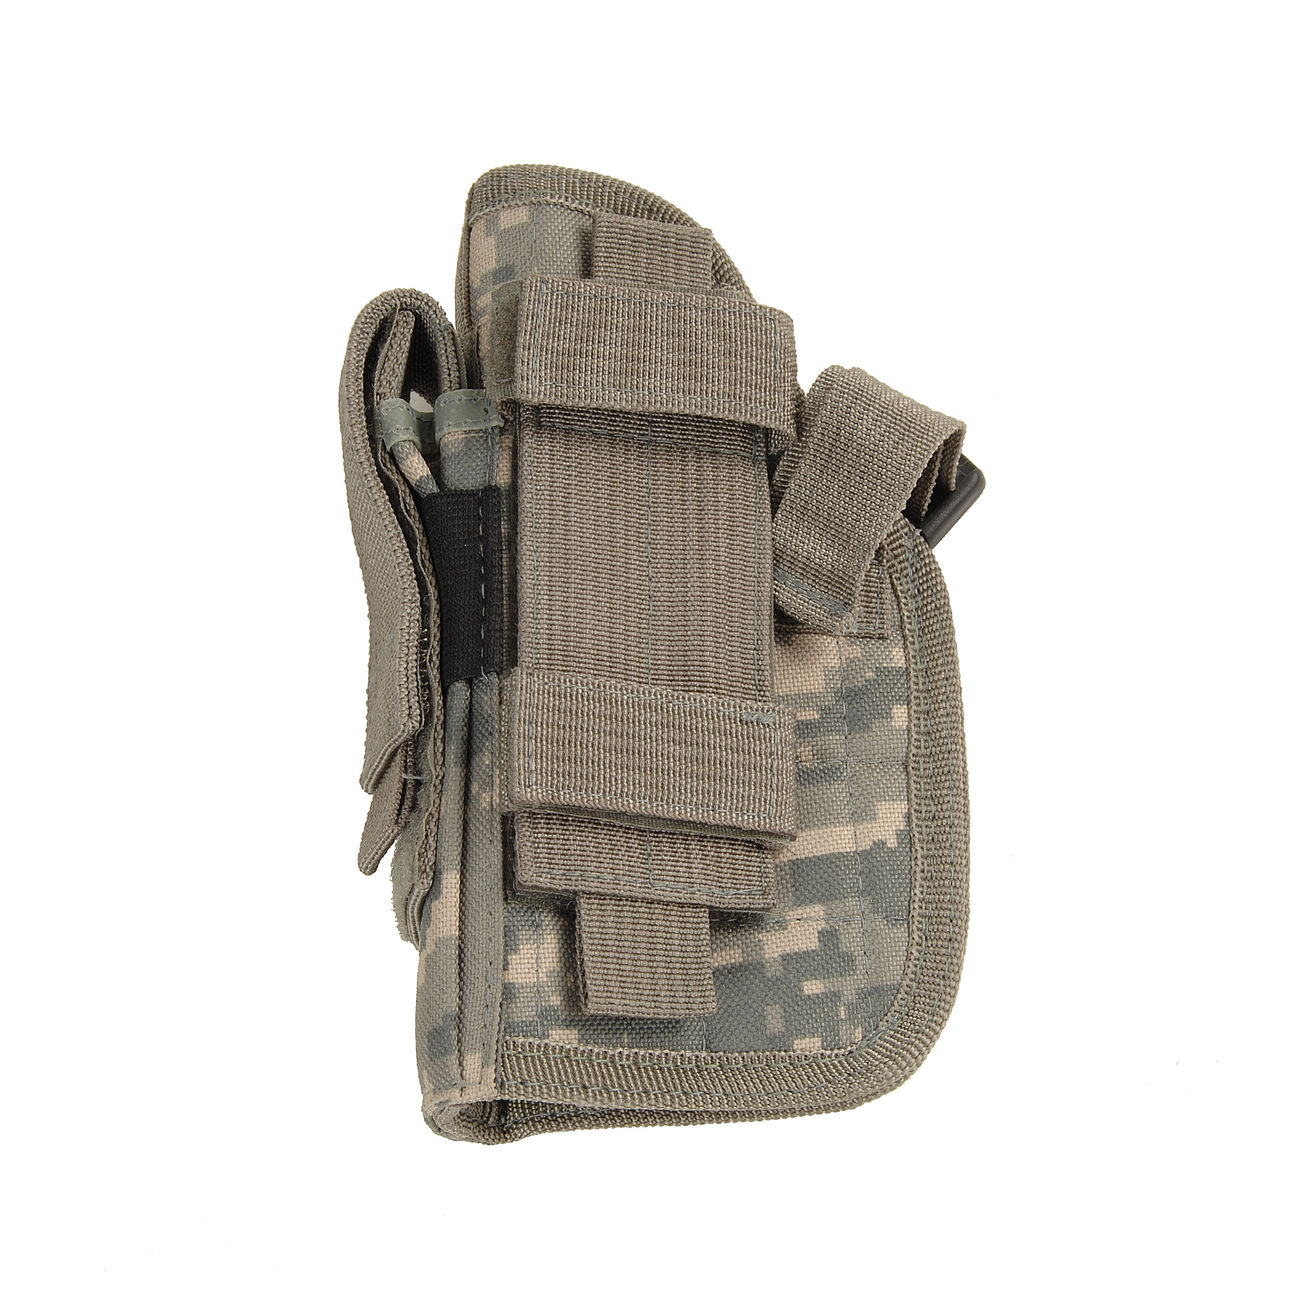 Fidragon Beinholster Tactical Kombi Universal AT-digital 4